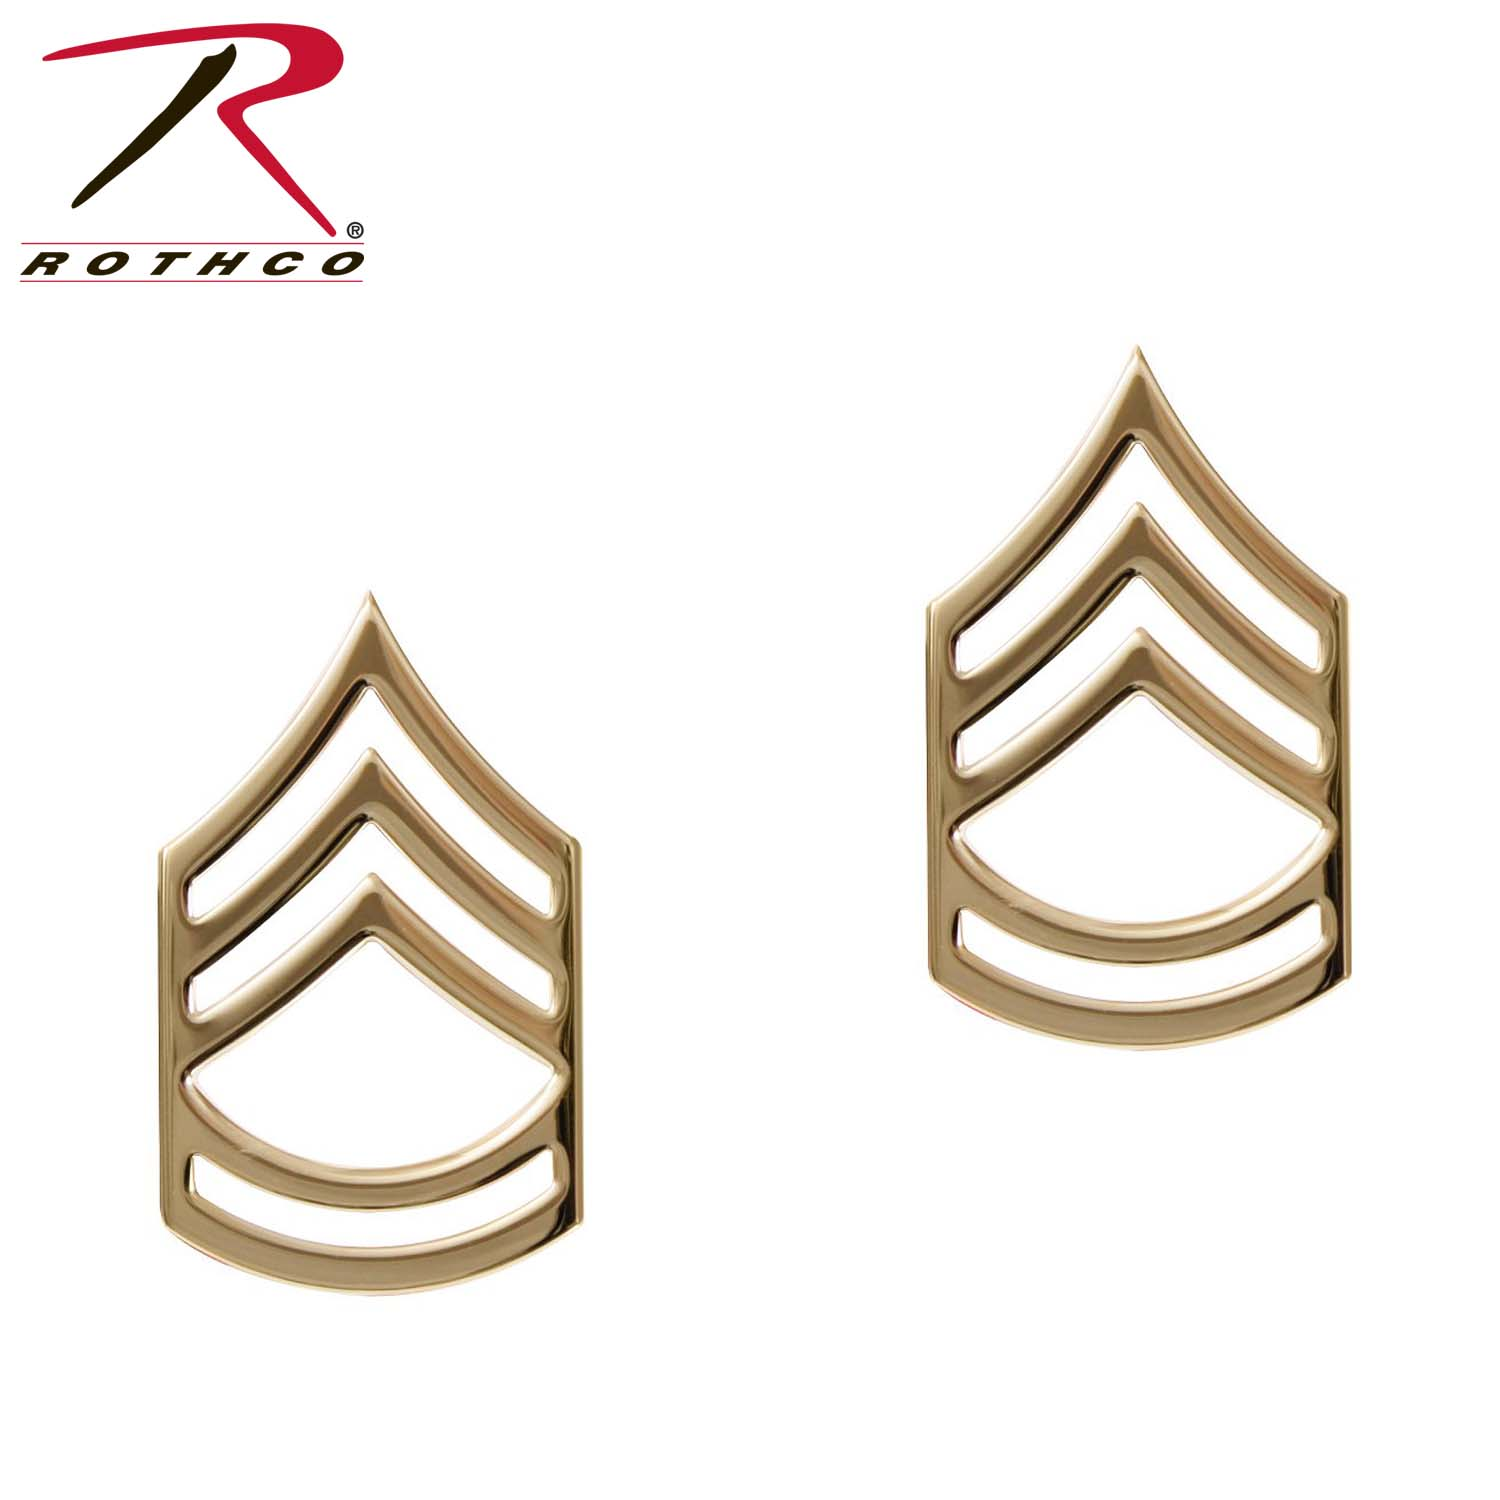 Rothco Sergeant First Class Polished Insignia